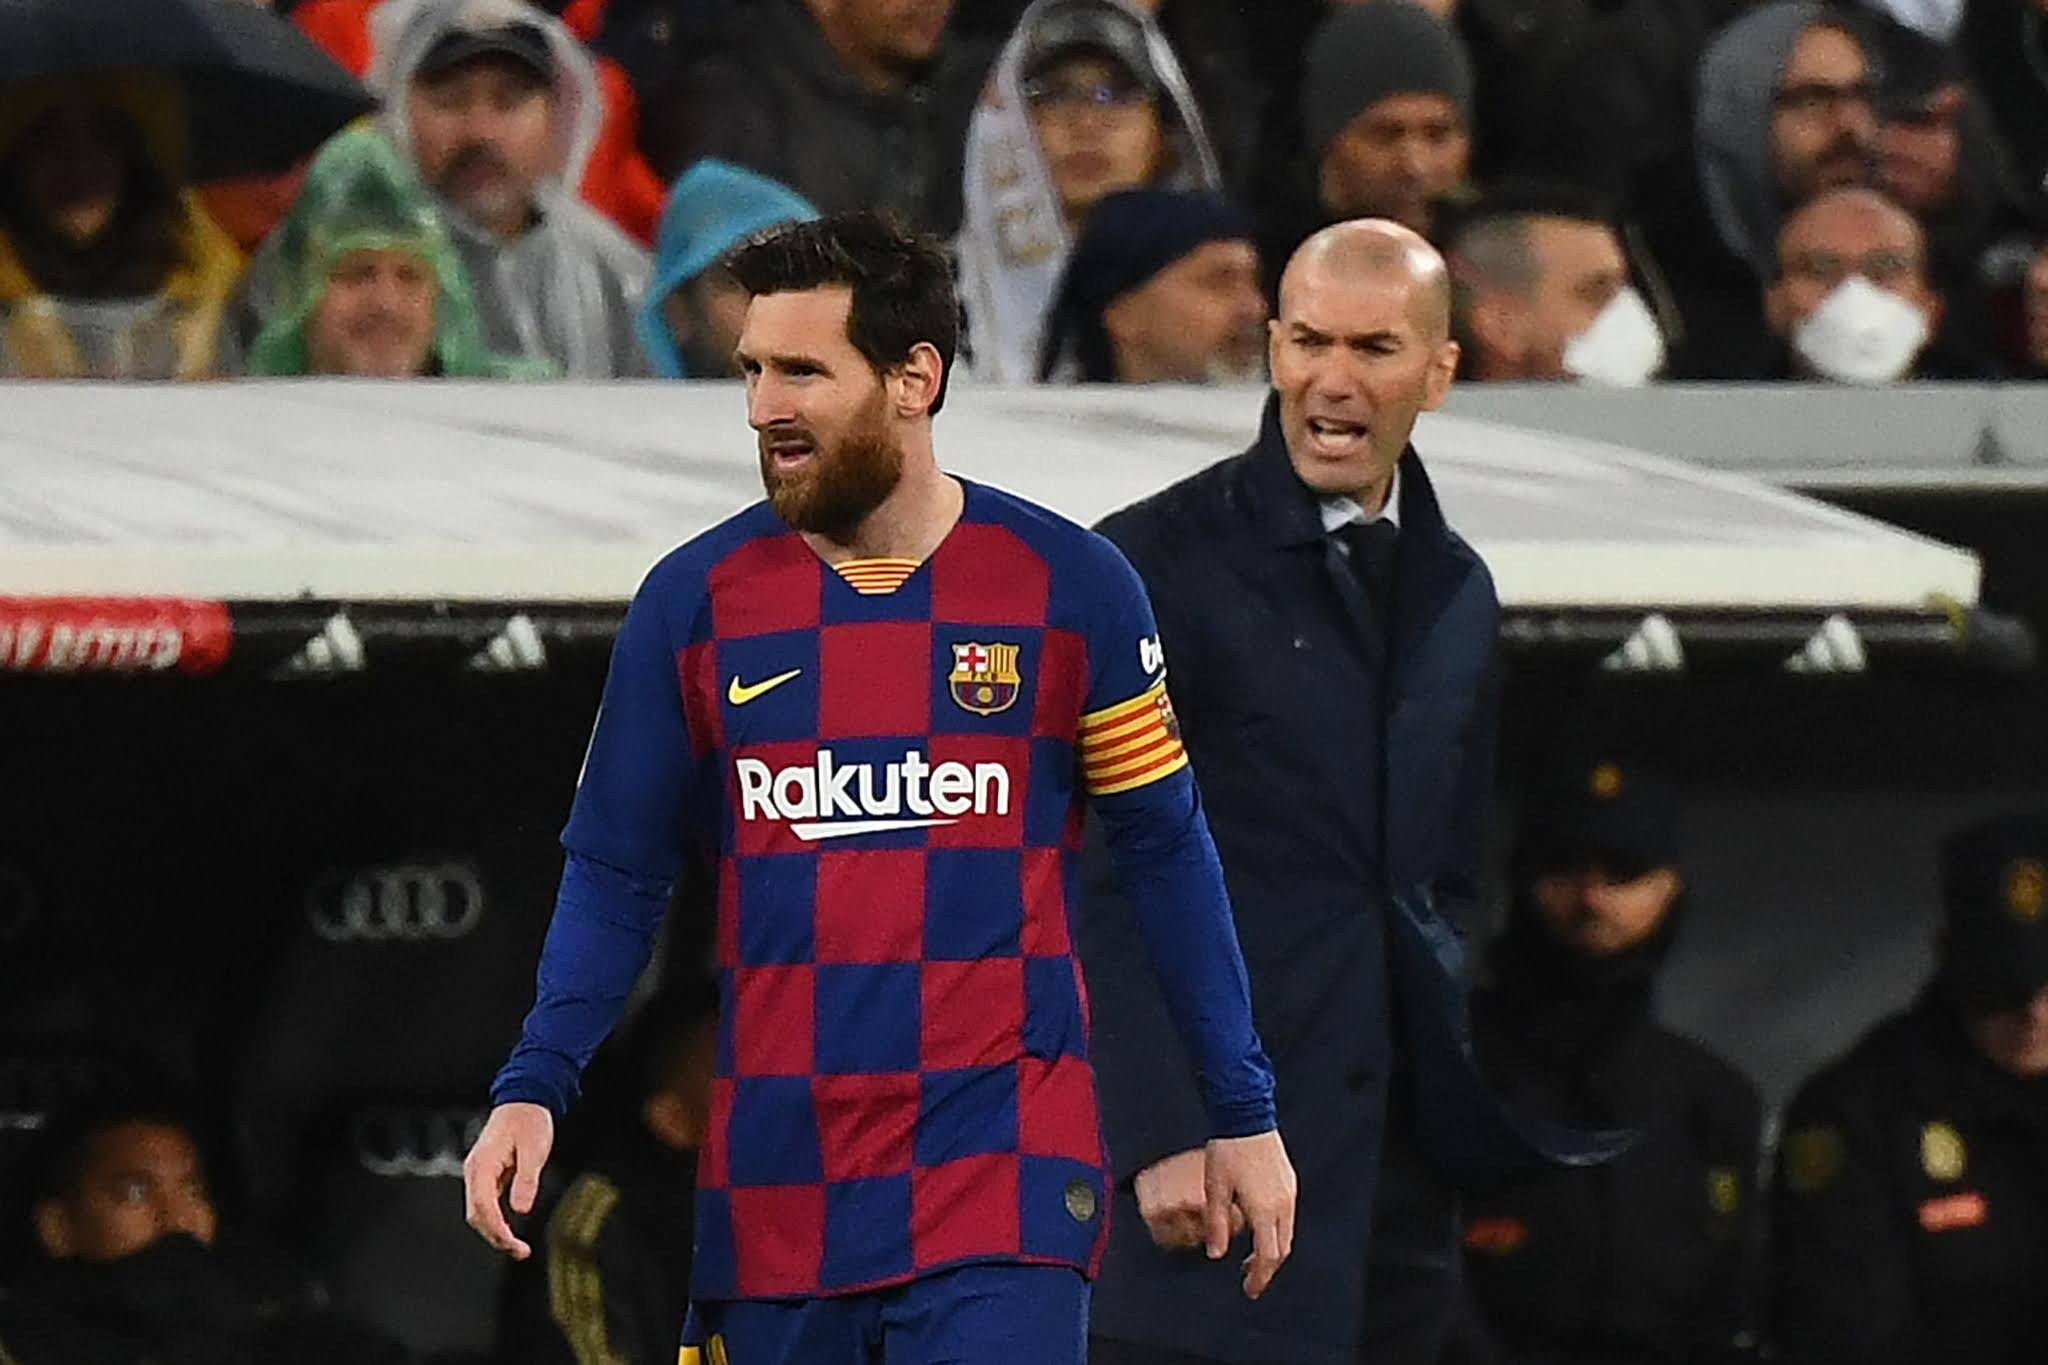 Real Madrid manager Zinedine Zidane and Barcelona's talisman Lionel Messi